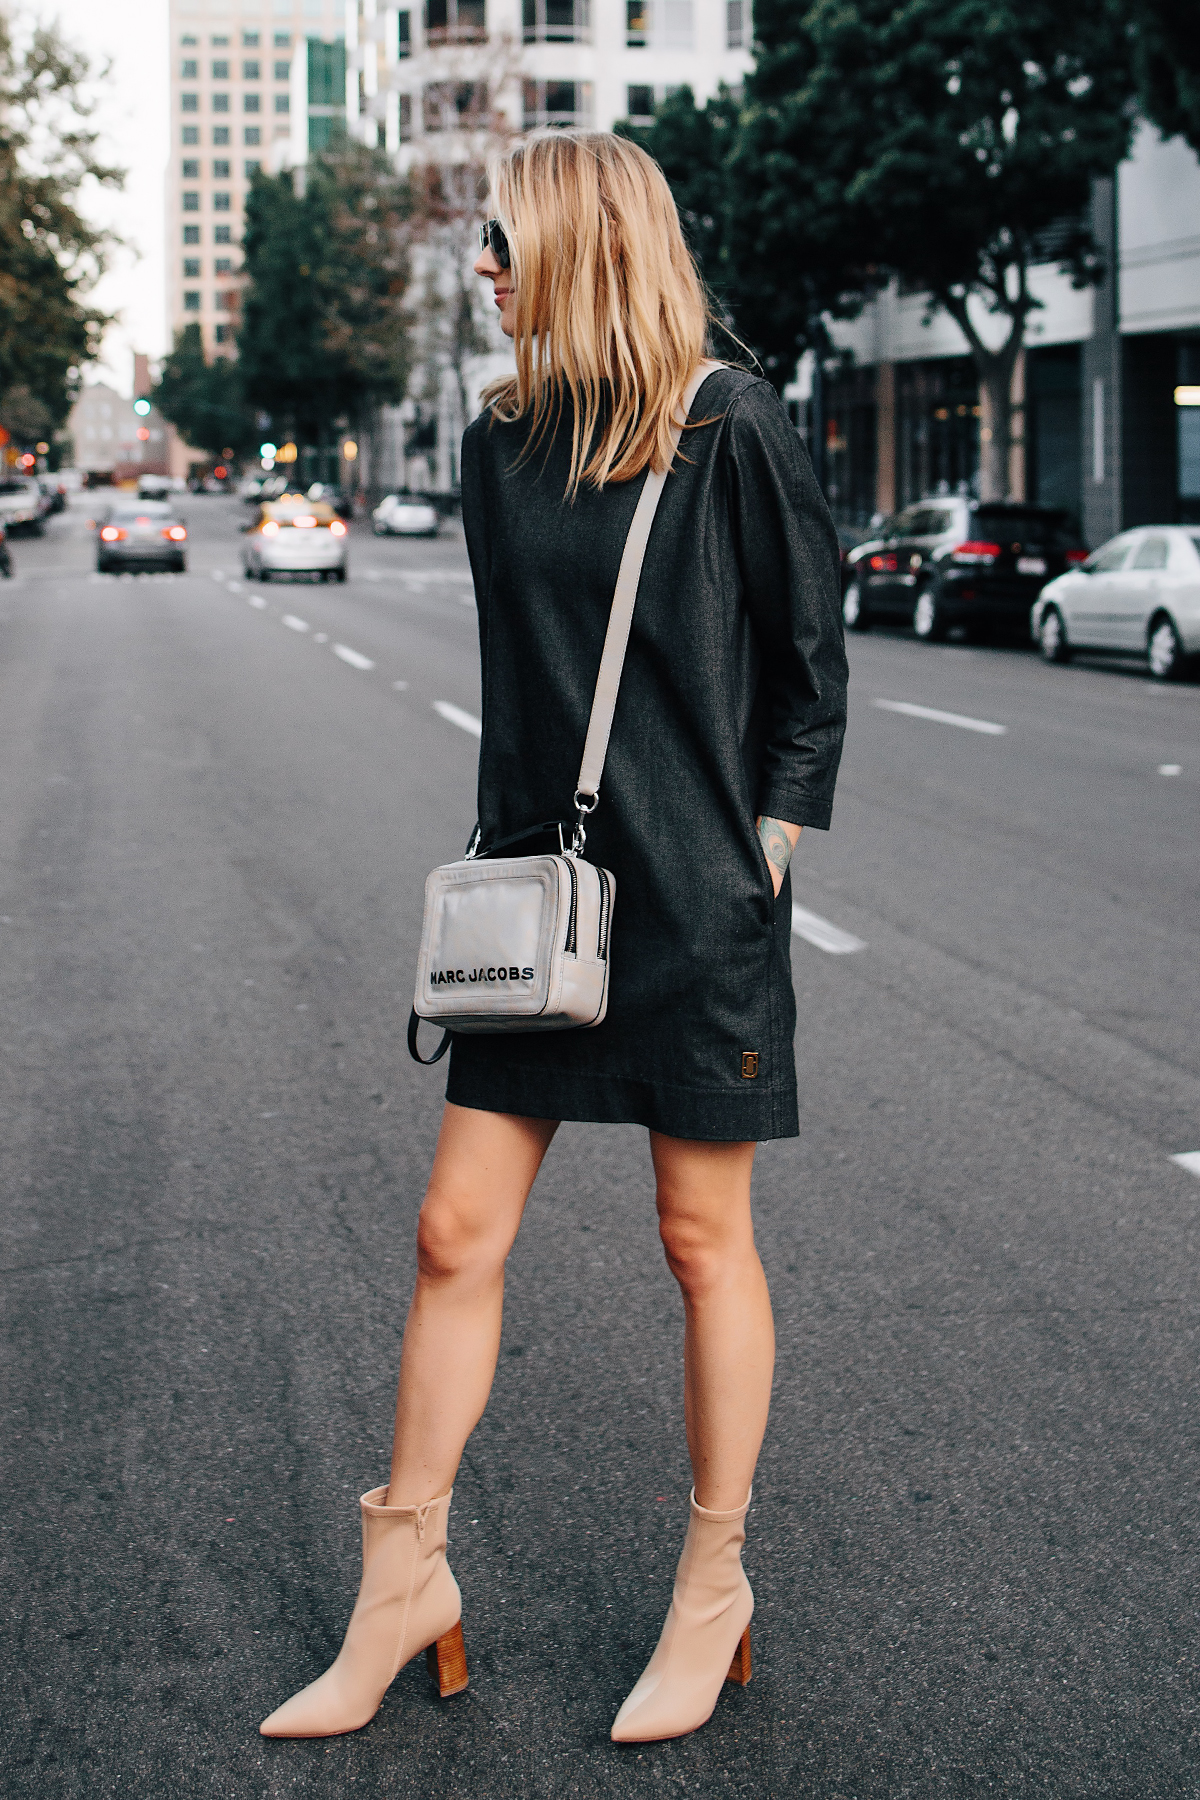 Blonde Woman Wearing Fashion Jackson Marc Jacobs Box Bag Marc Jacobs Denim Shift Dress Tan Heeled Booties Fashion Jackson San Diego Fashion blogger Street Style